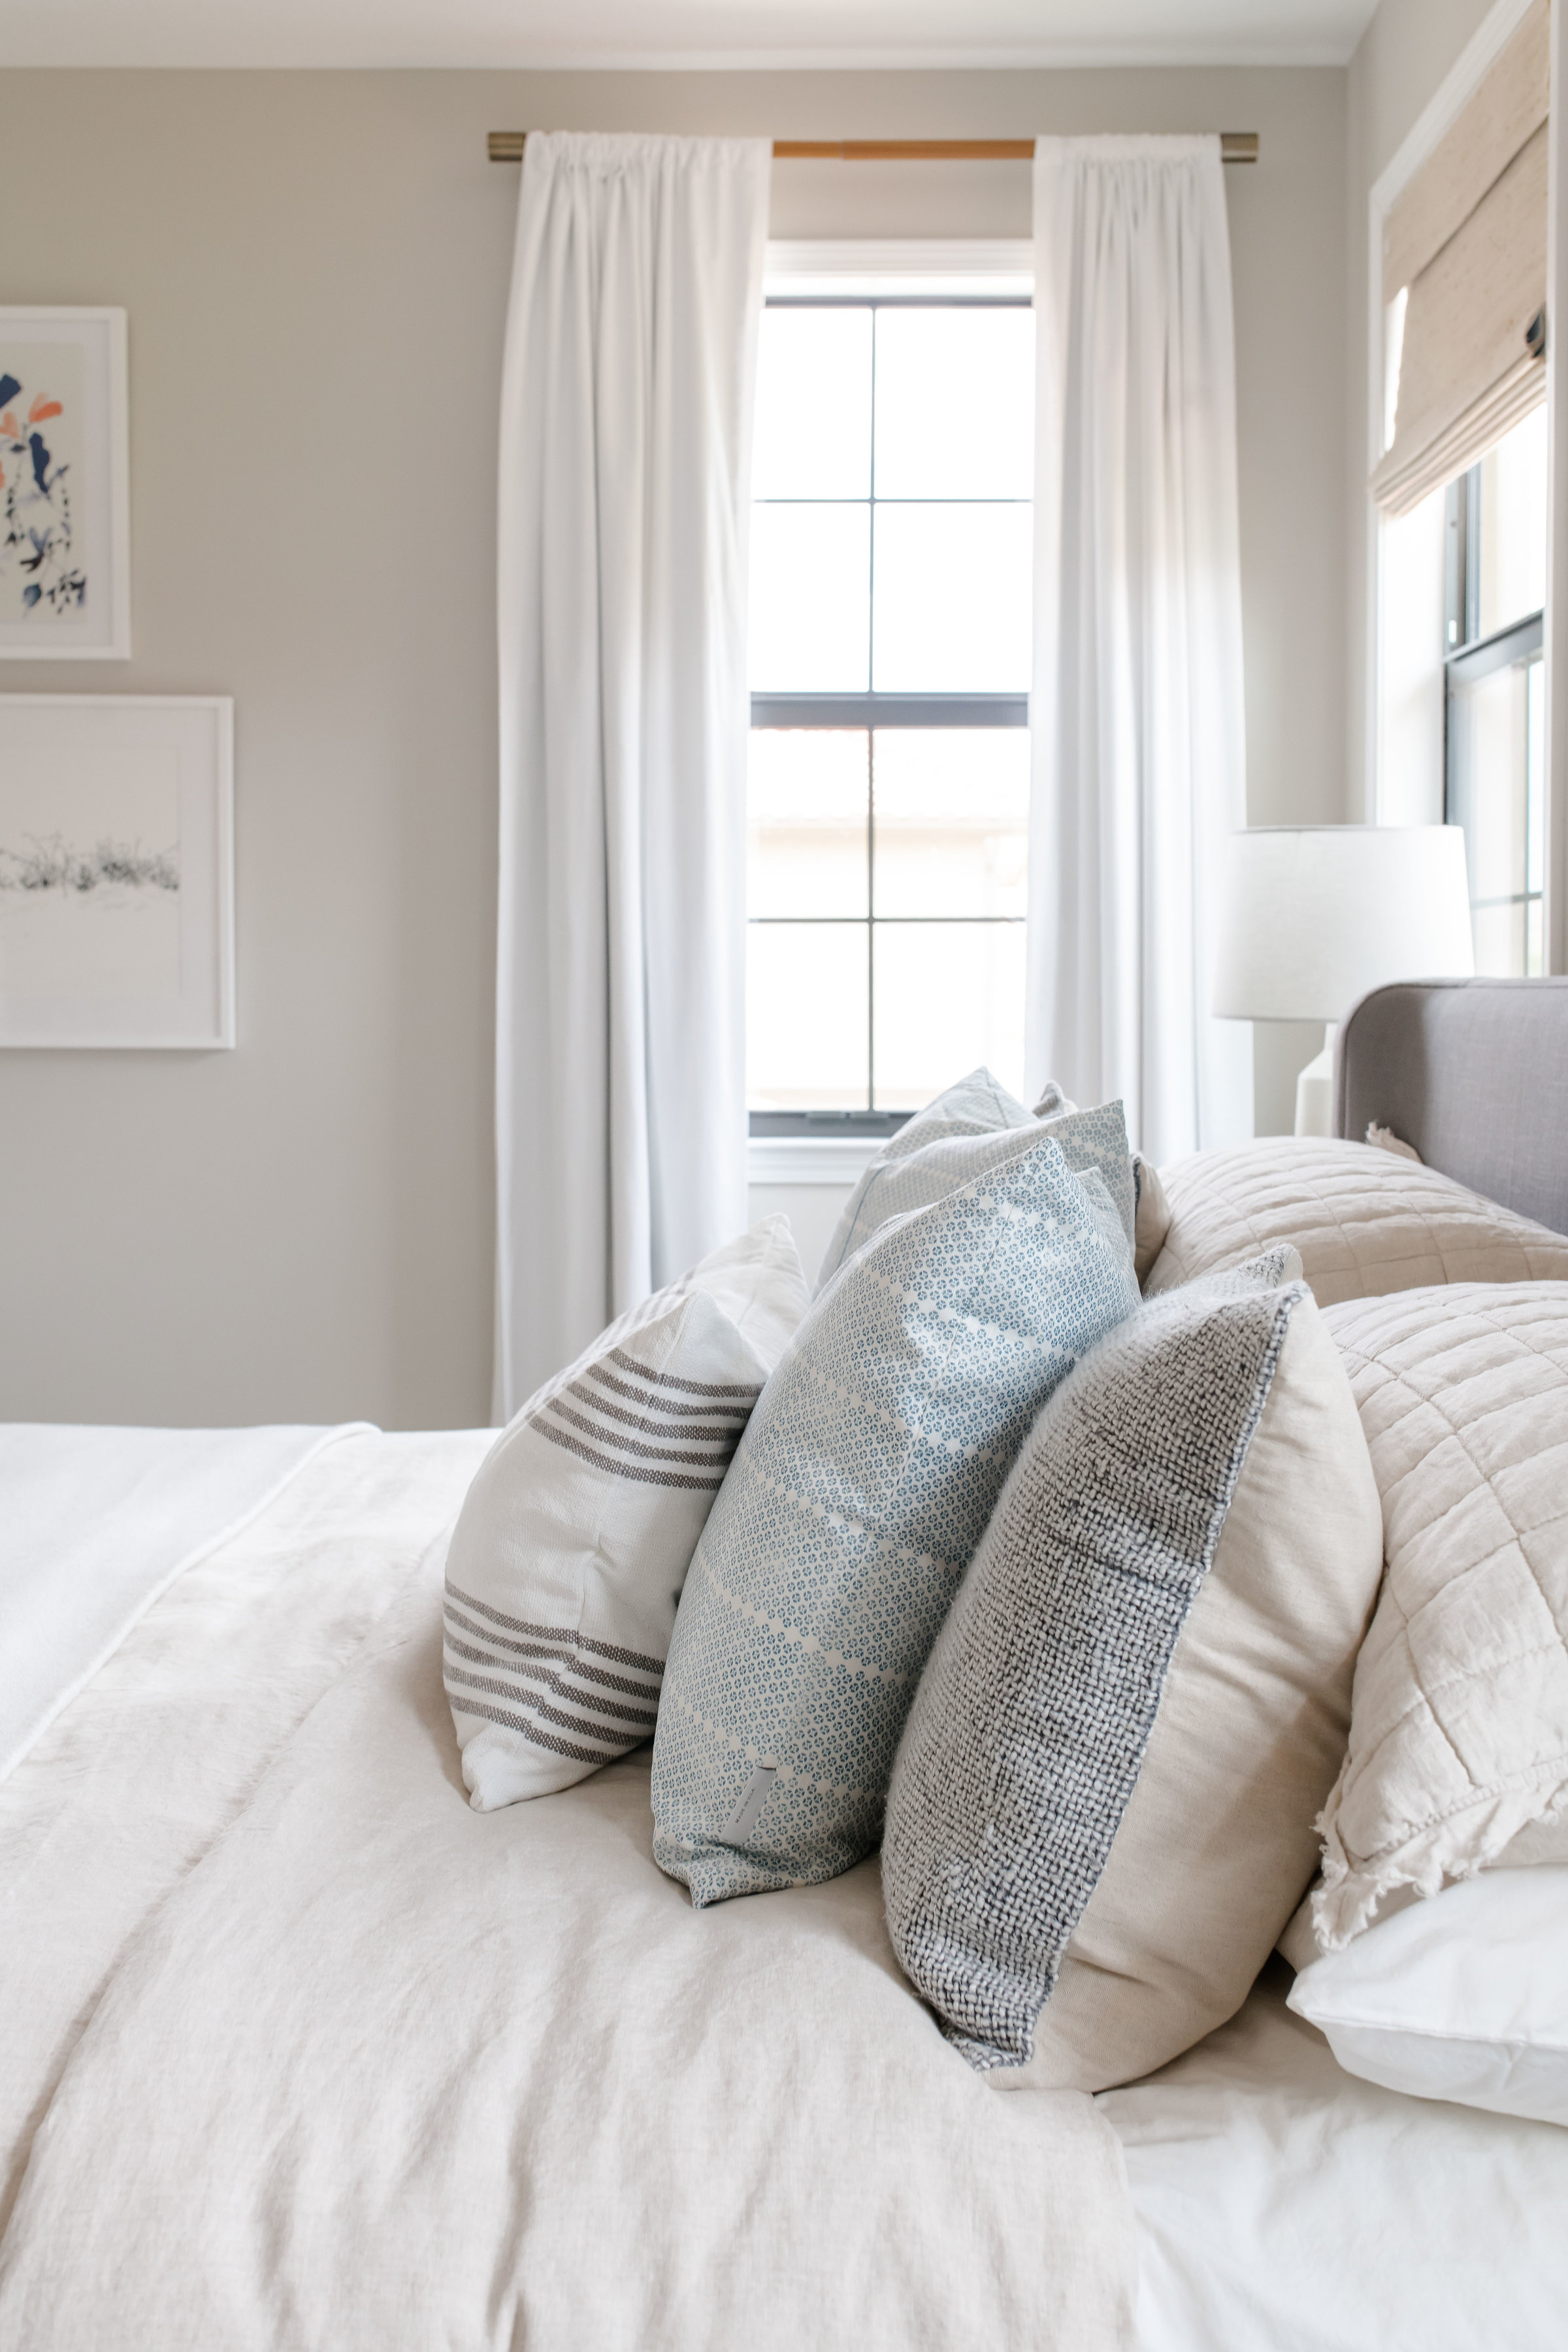 parkland project master bedroom - the habitat collective - interior design